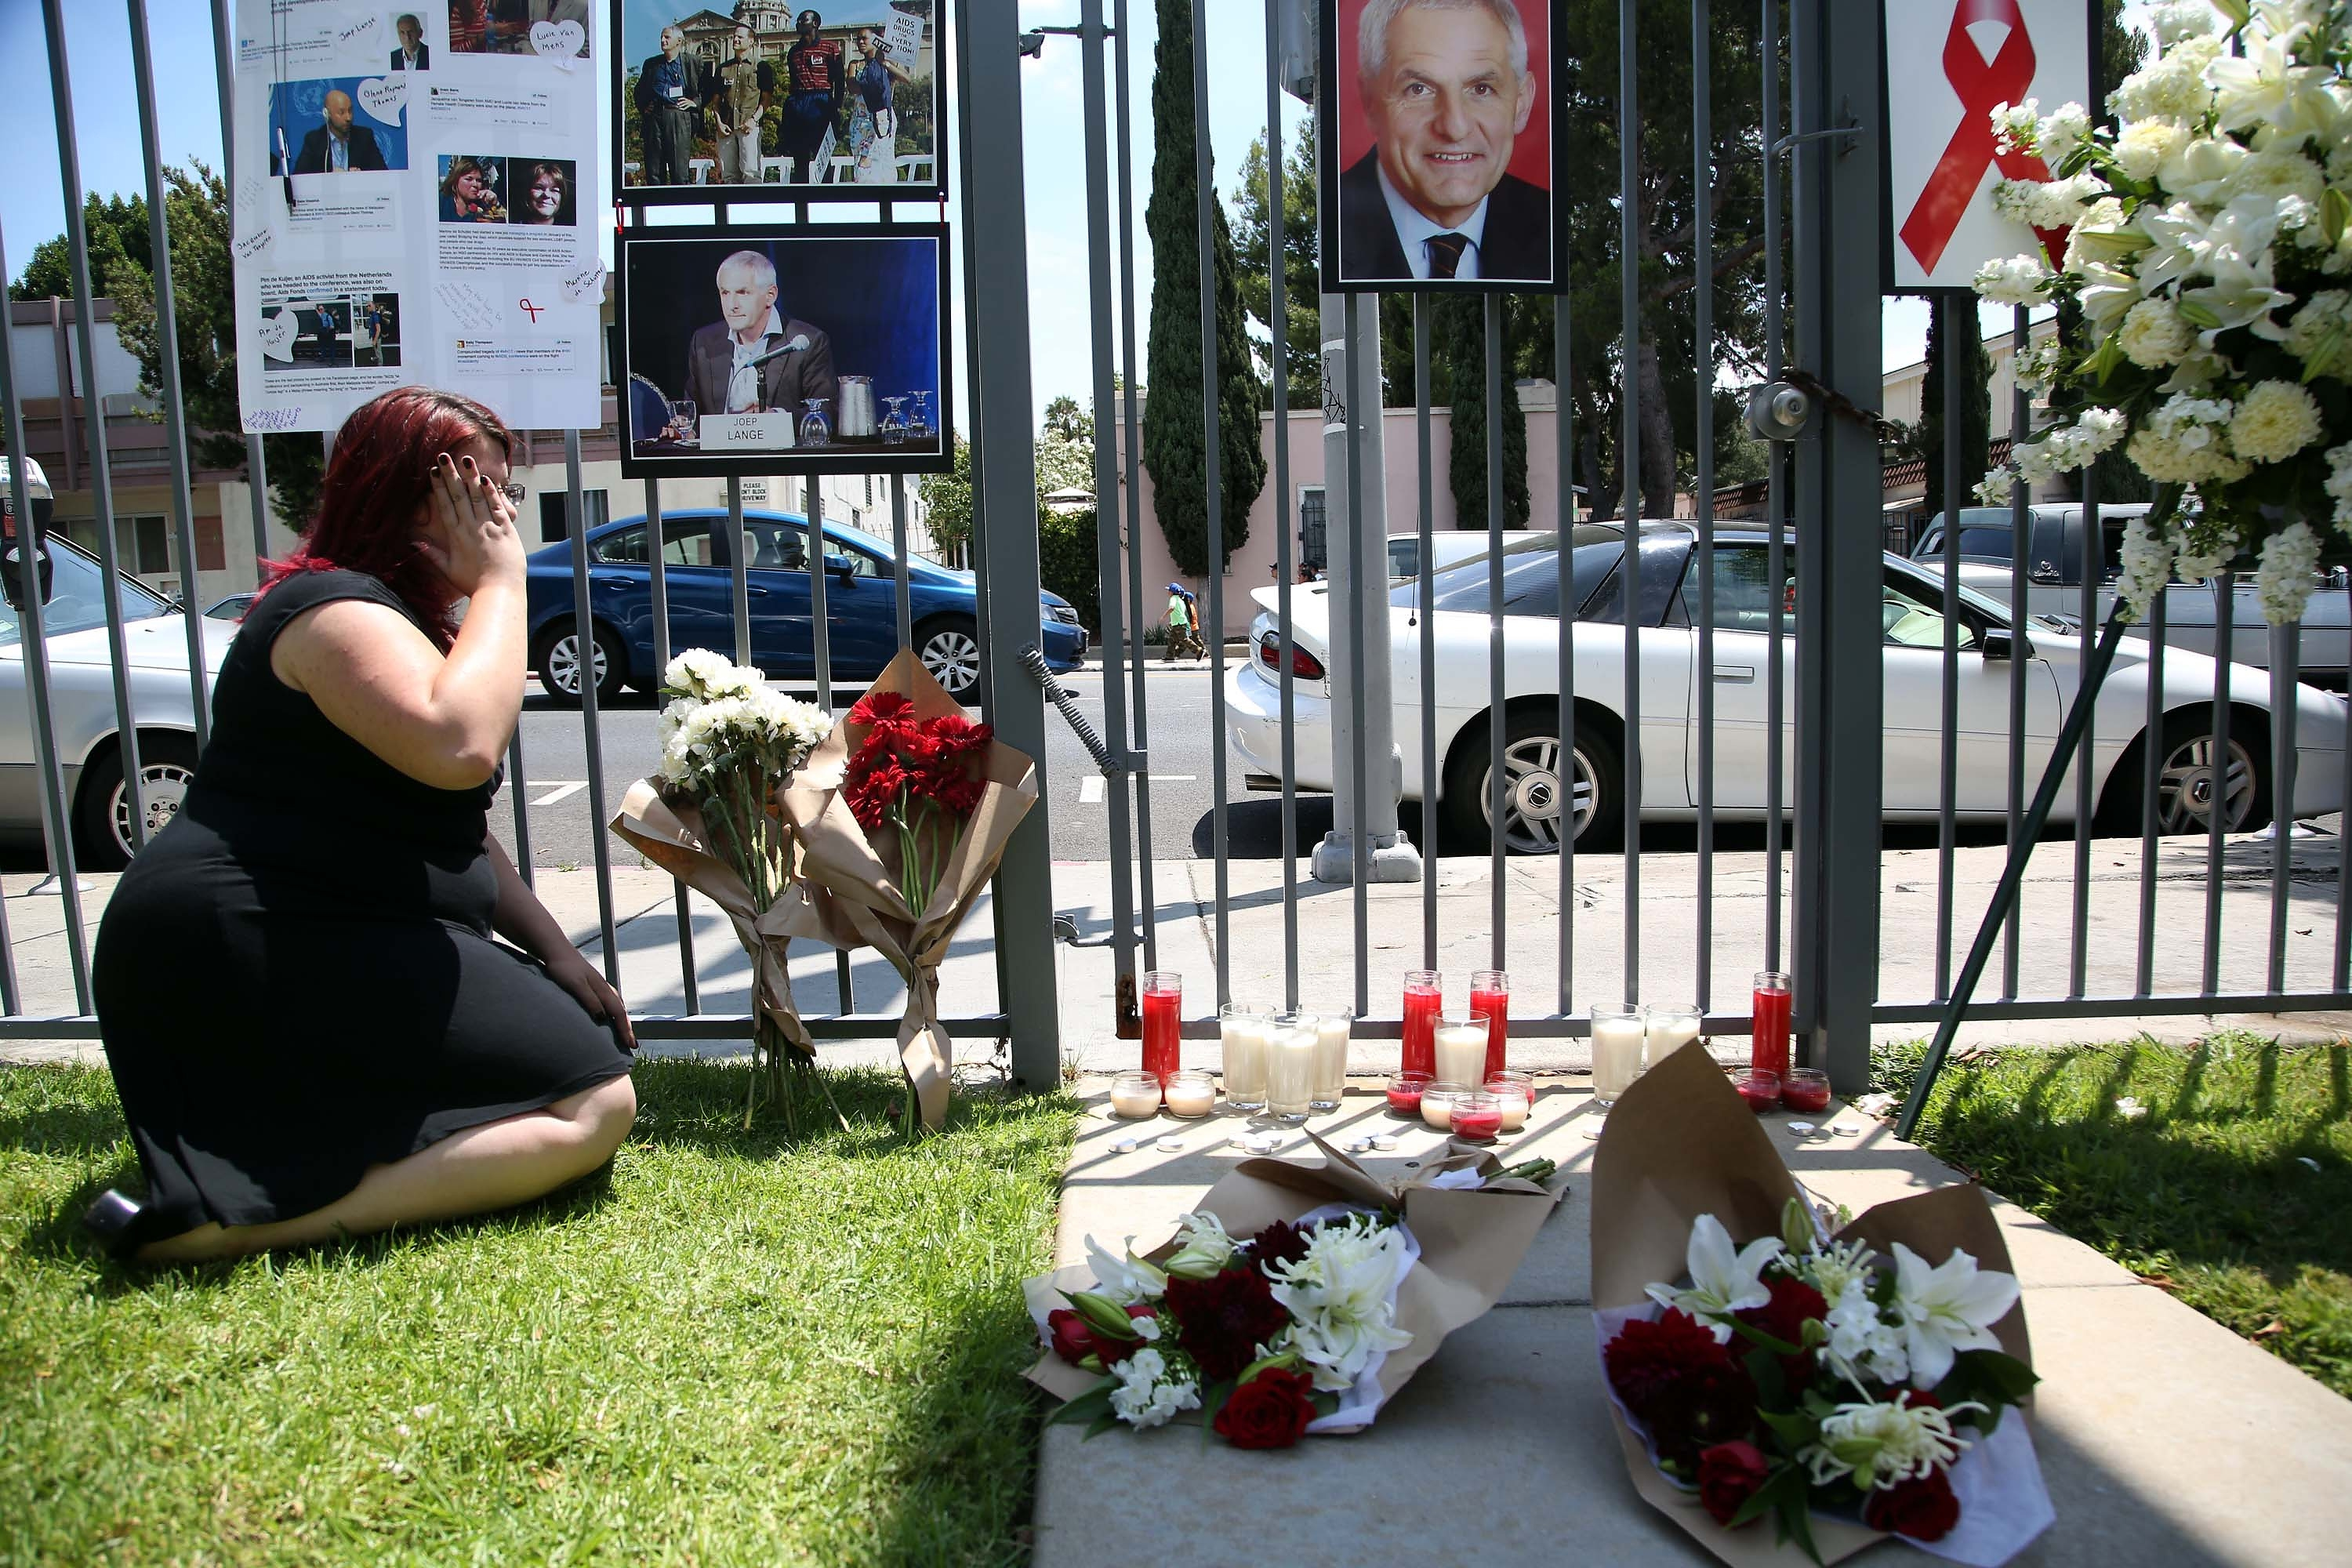 A woman in Los Angeles mourns the loss of Dr. Joep Lange, the former president of the International AIDS Society. The prominent researcher and others were headed to an AIDS conference in Australia when their Malaysia Airlines flight went down Thursday in Ukraine.